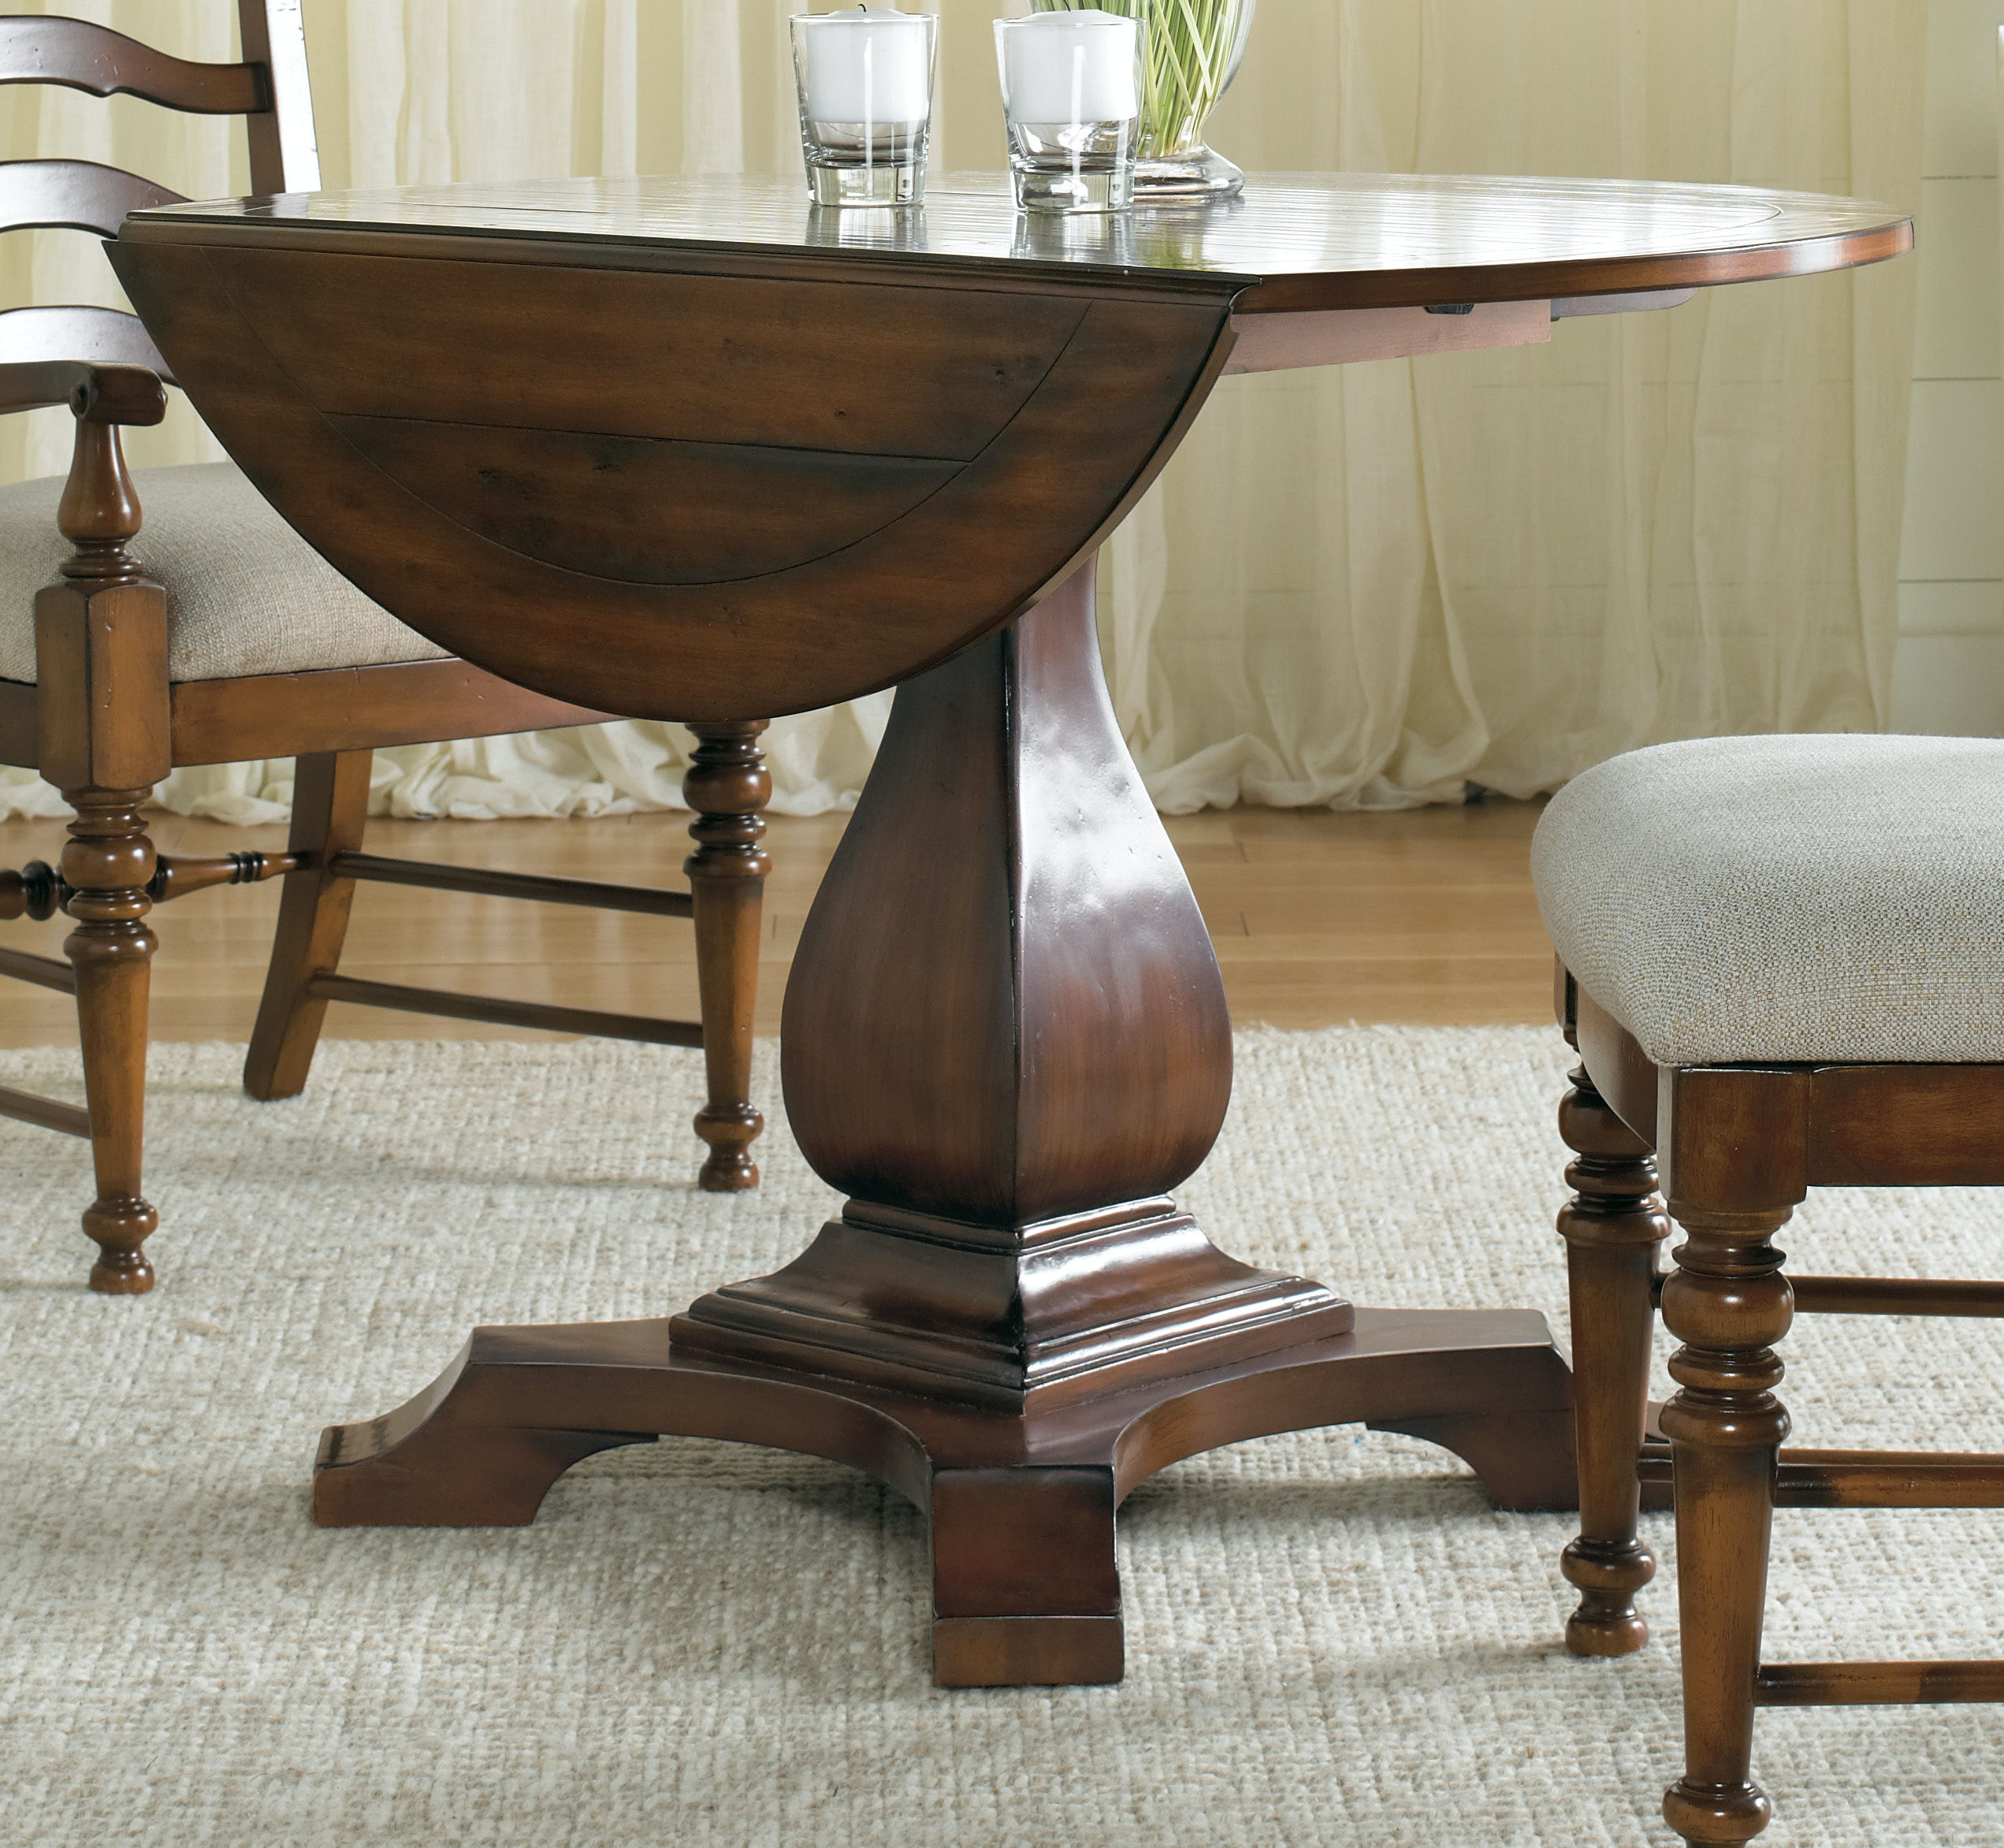 Beautiful Hooker Furniture Waverly Place Round Drop Leaf Pedestal Table 366 75 218 Idea